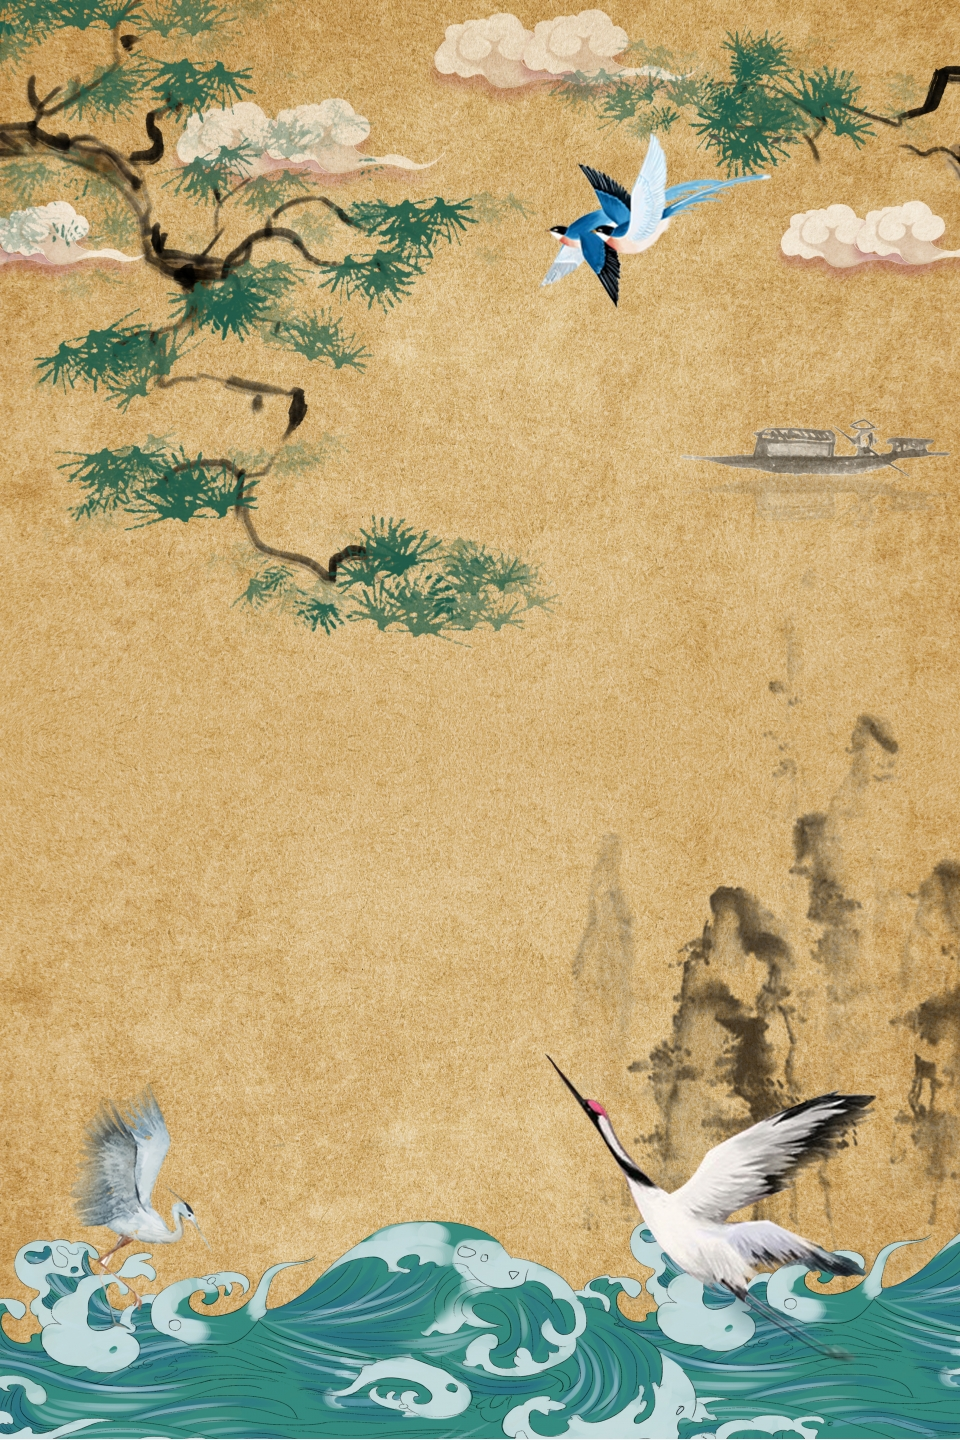 Meticulous Painting Classical Chinese Painting Chinese Style Pine Tree Branch Ostrich River Classical Chinese Style Auspicious Clouds Background Image For Free Download